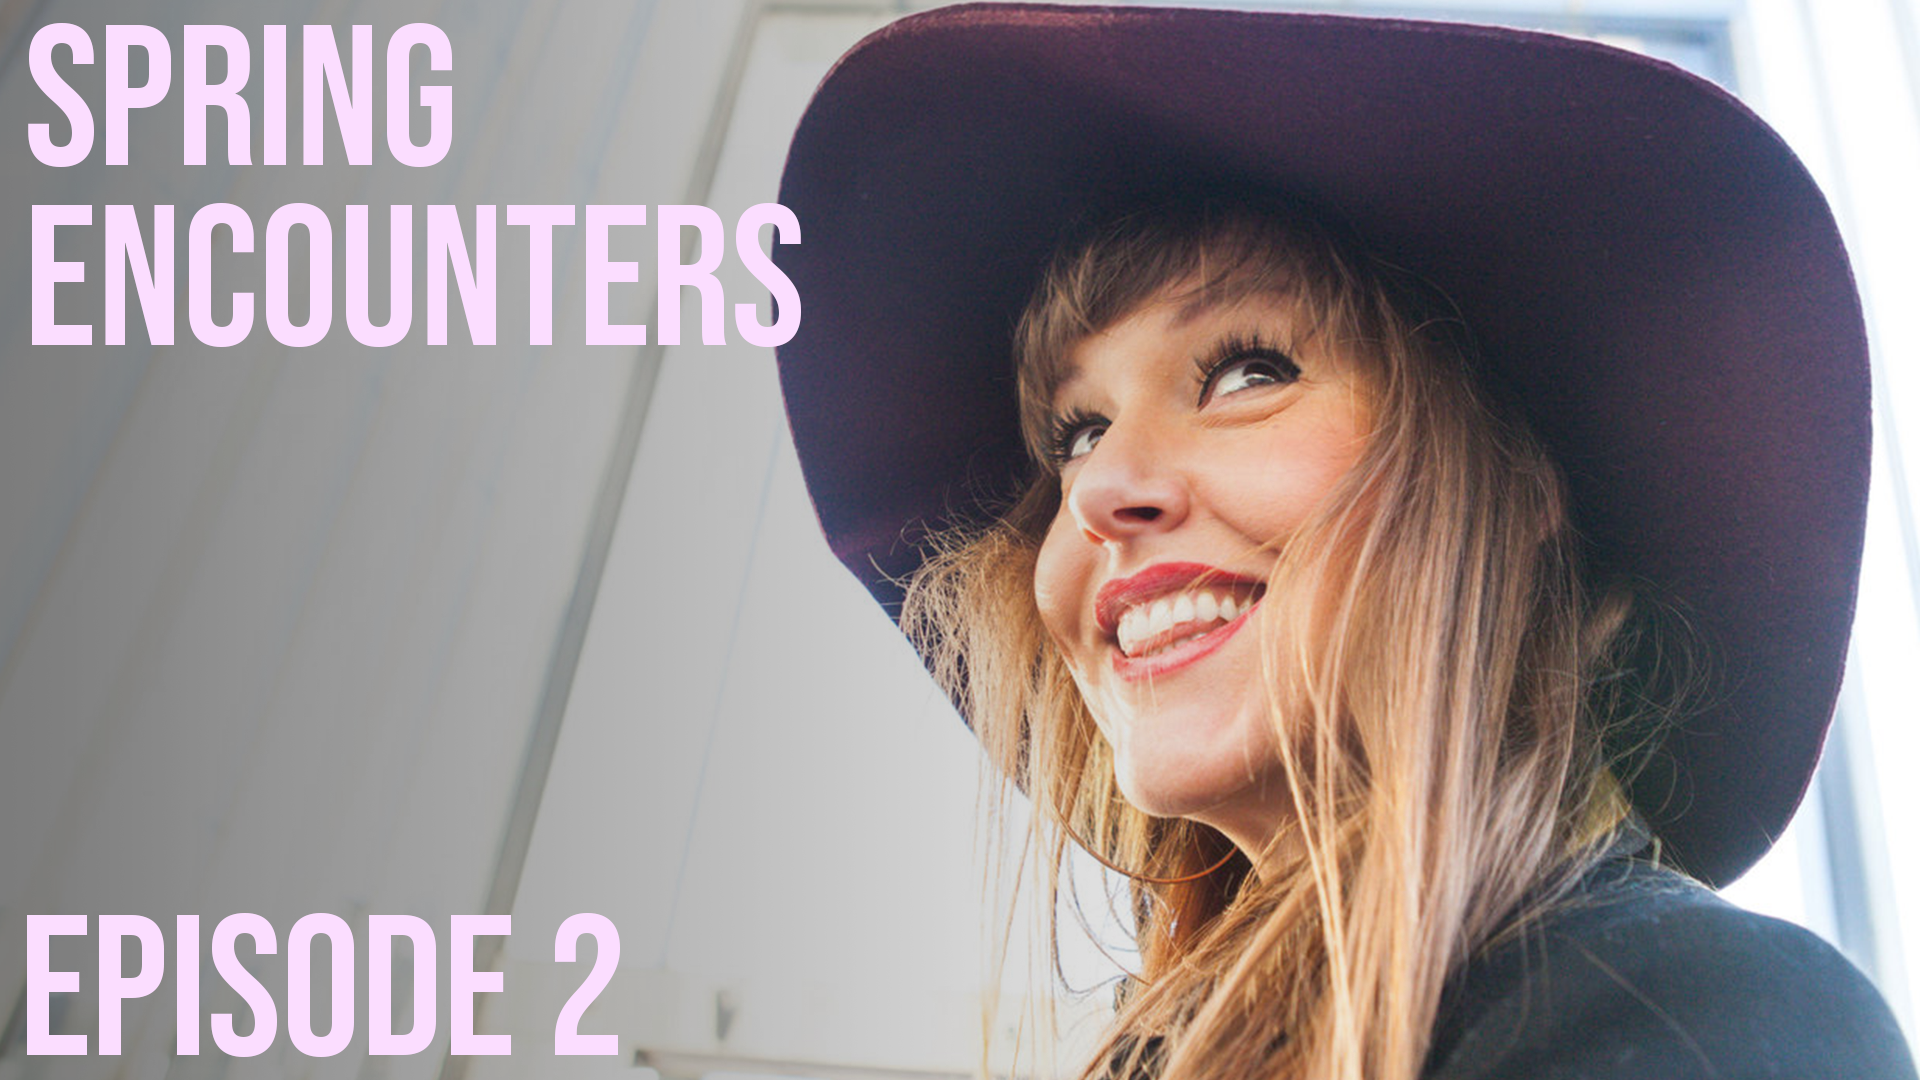 Photo for Spring Encounters: Episode 2 on ViewStub